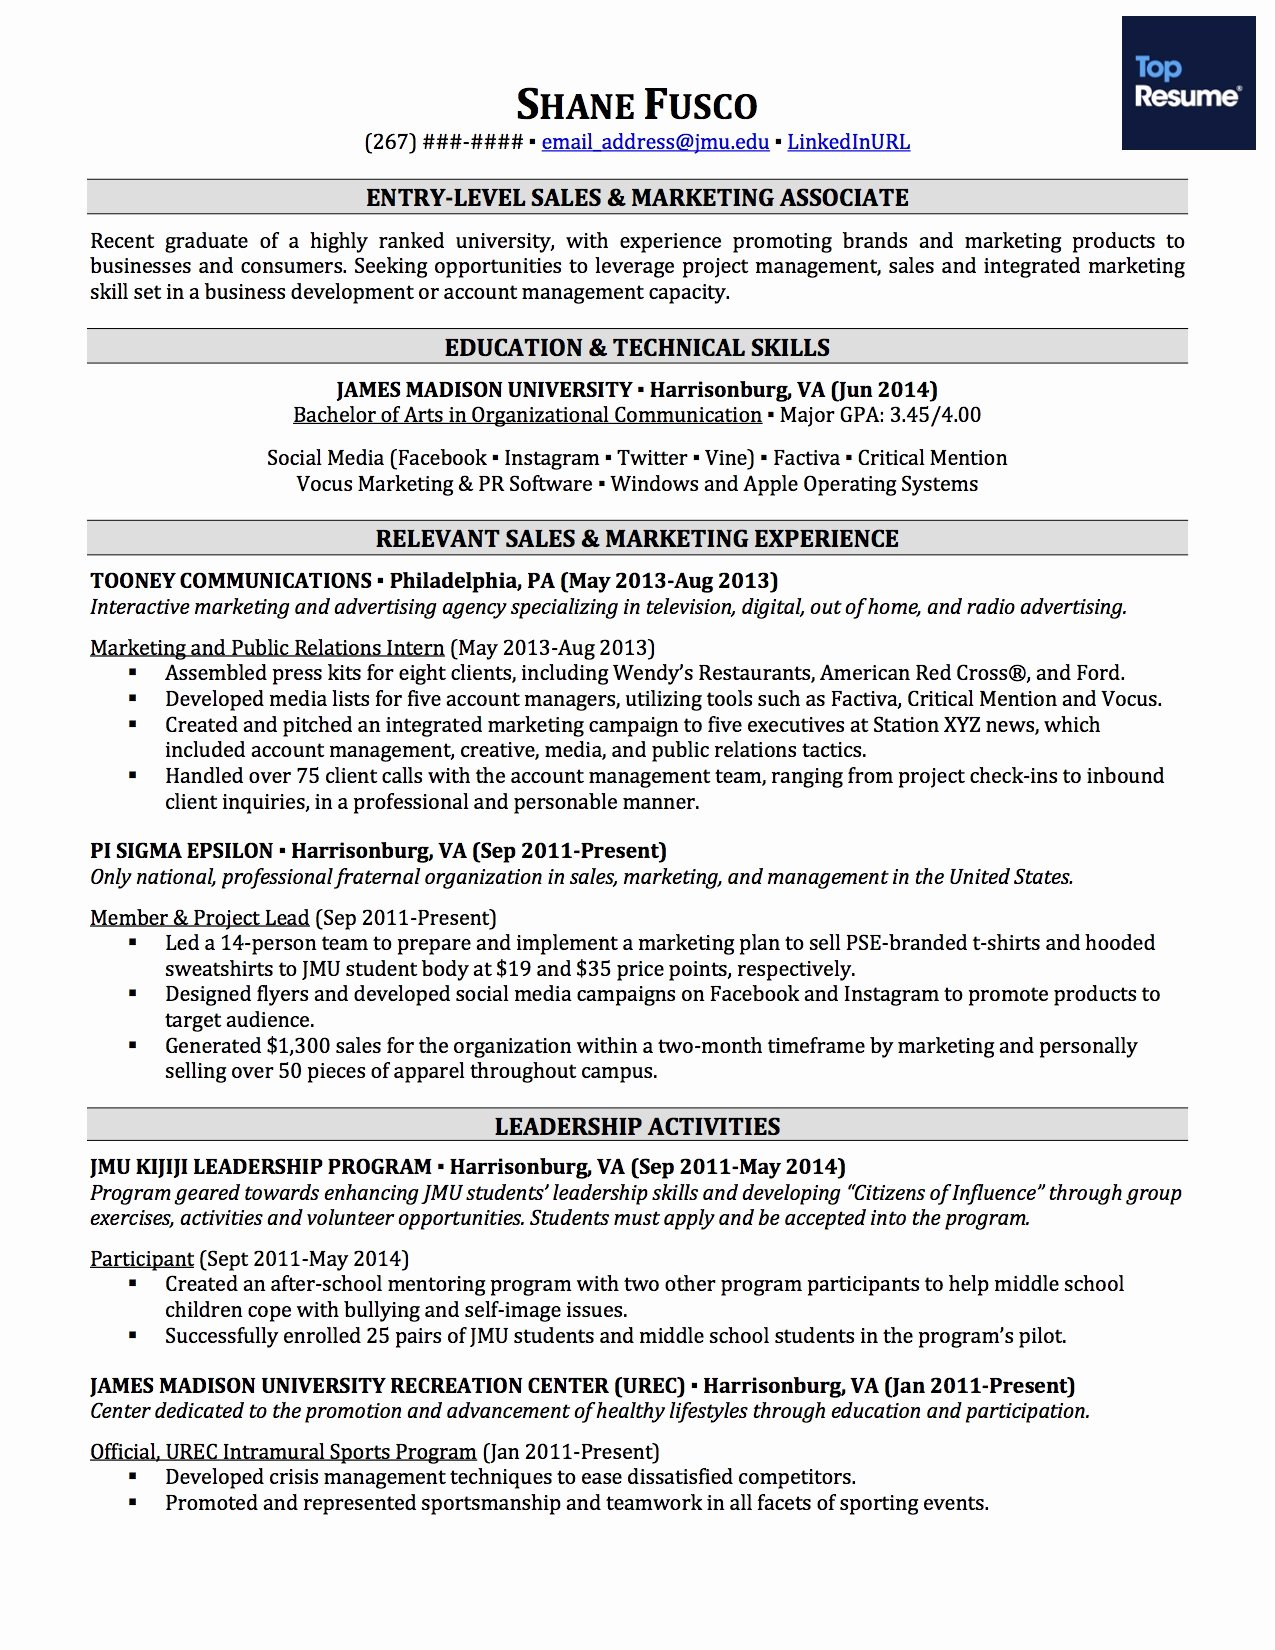 How to Write A Resume with No Job Experience